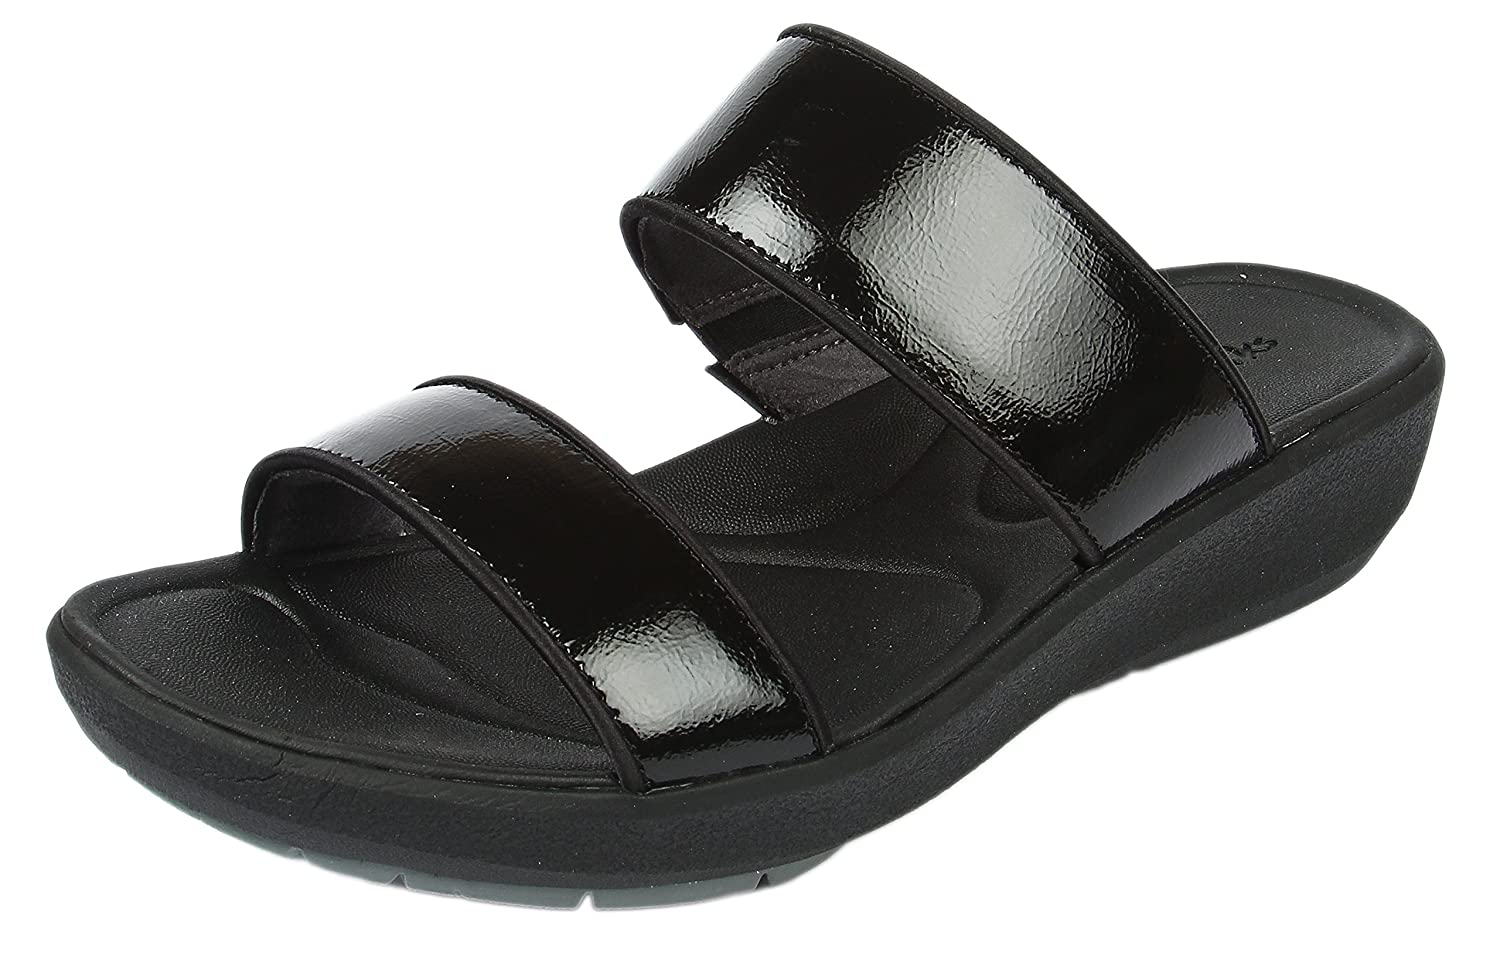 2bbe14963ee Clarks Women s Wave Glitter Black Fashion Sandals - 6.5 UK  Buy Online at  Low Prices in India - Amazon.in